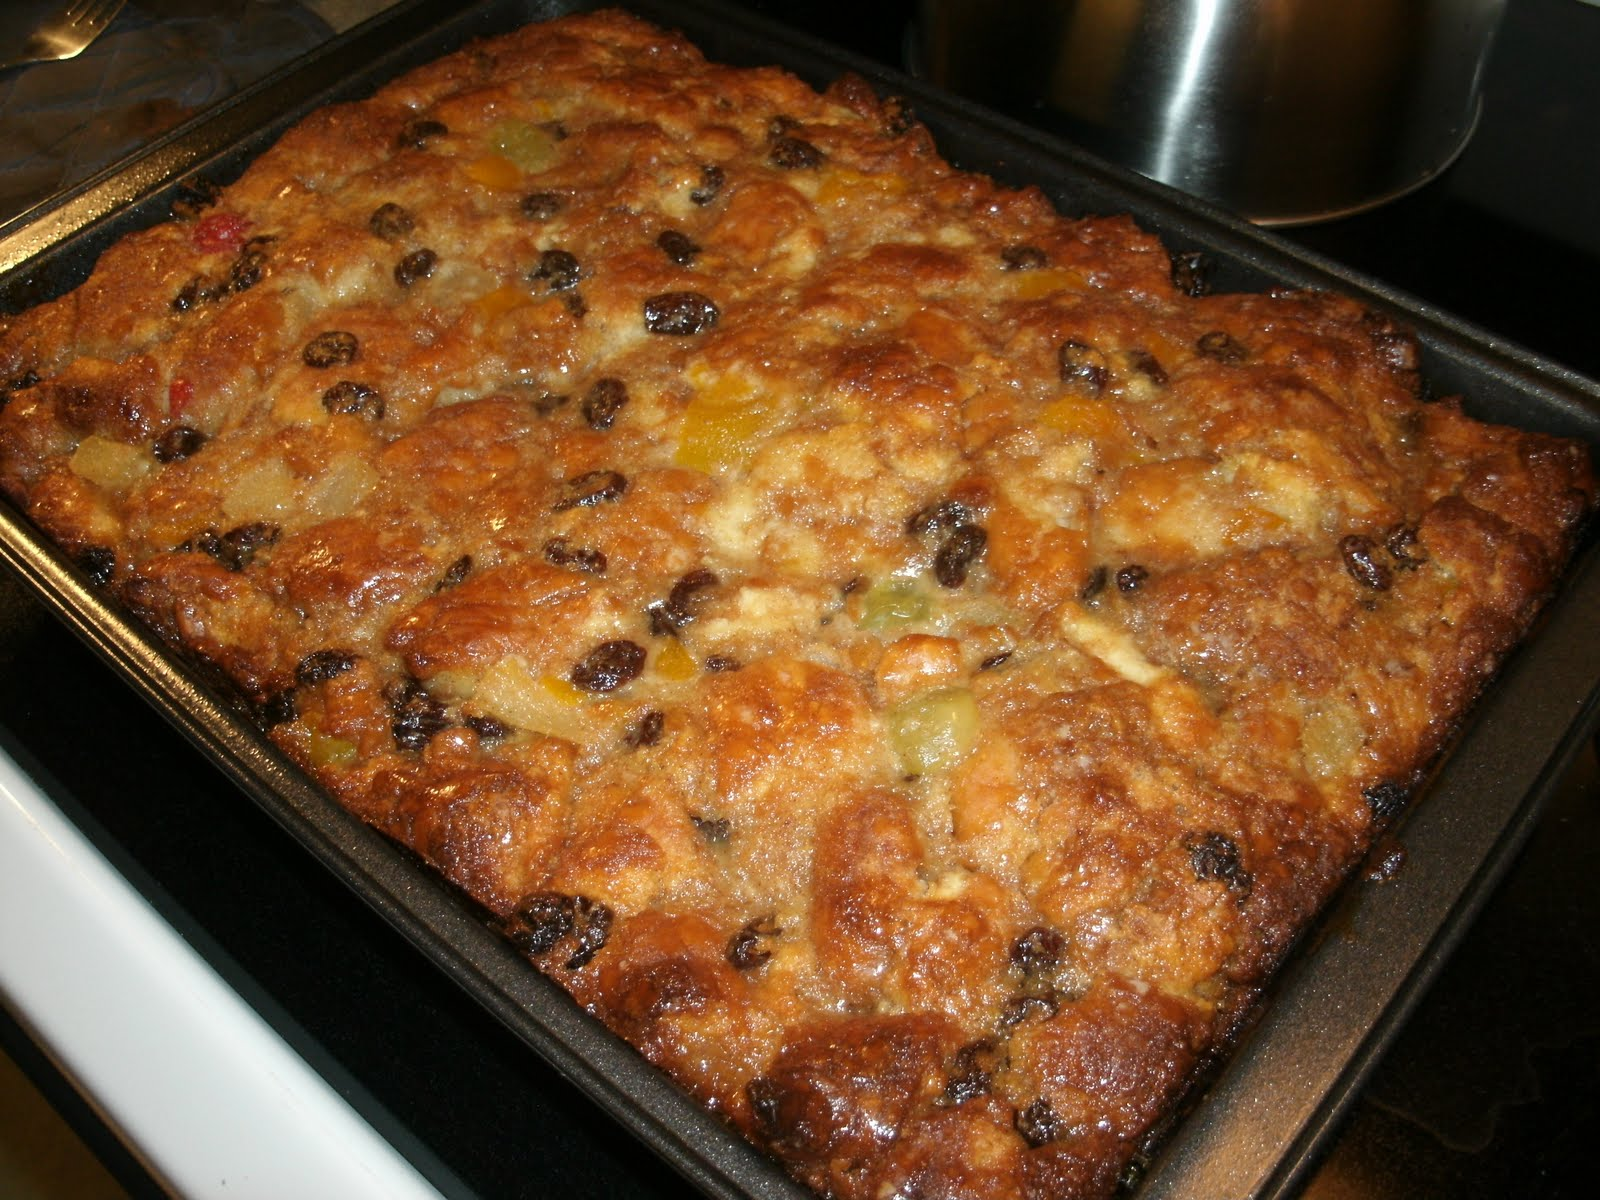 ... Paula Deen's Glazed Doughnut Bread Pudding. It's sooo pretty, though